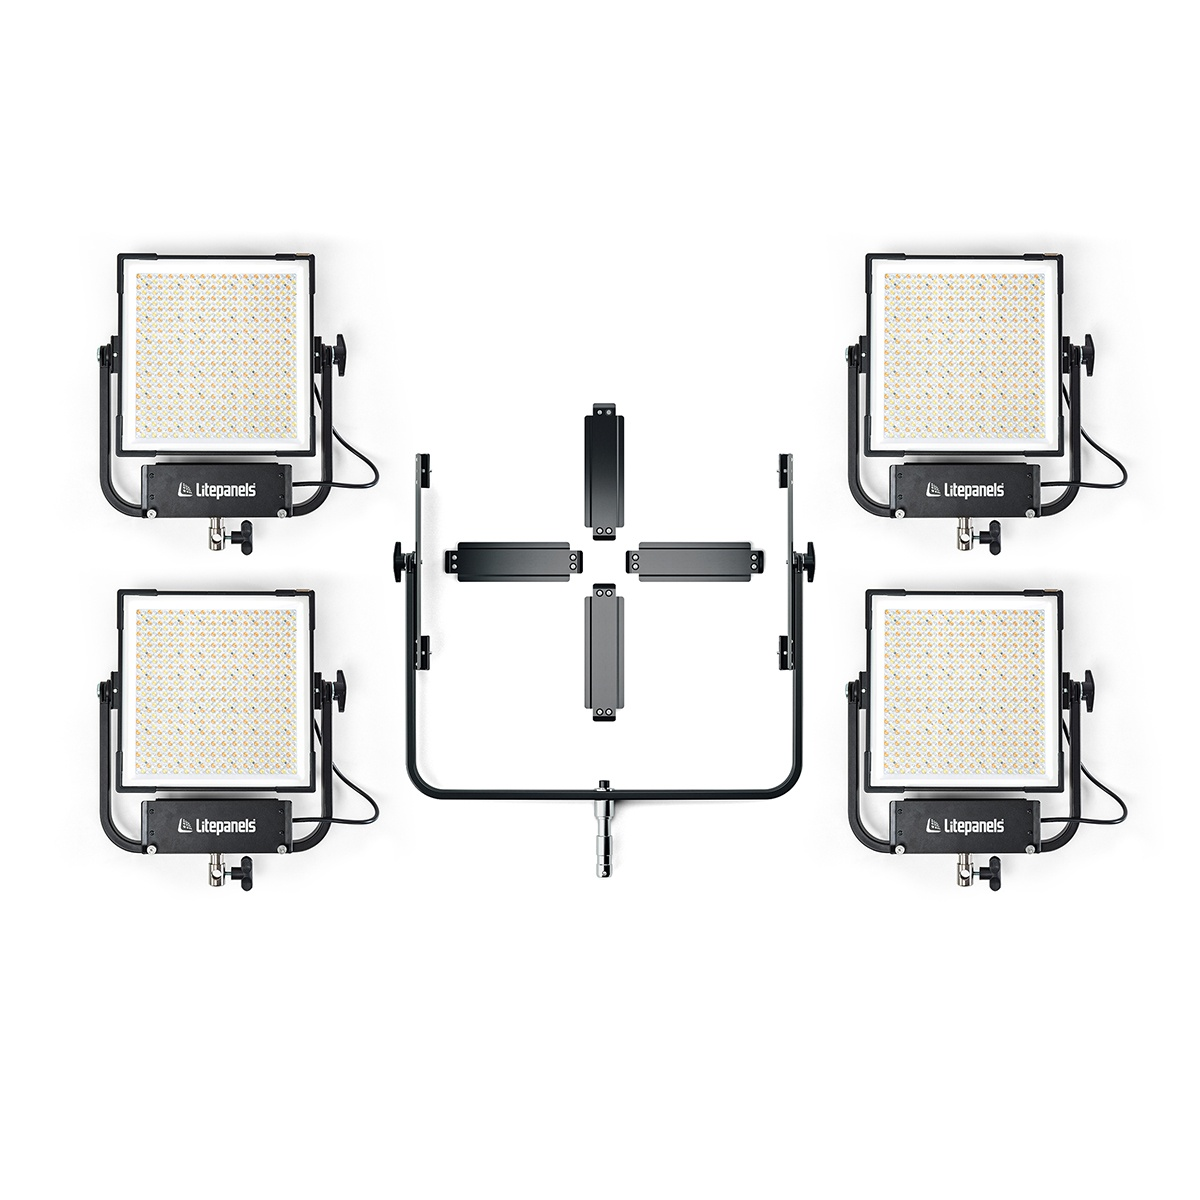 Gemini 1x1 Hard Quad Array Light Kit